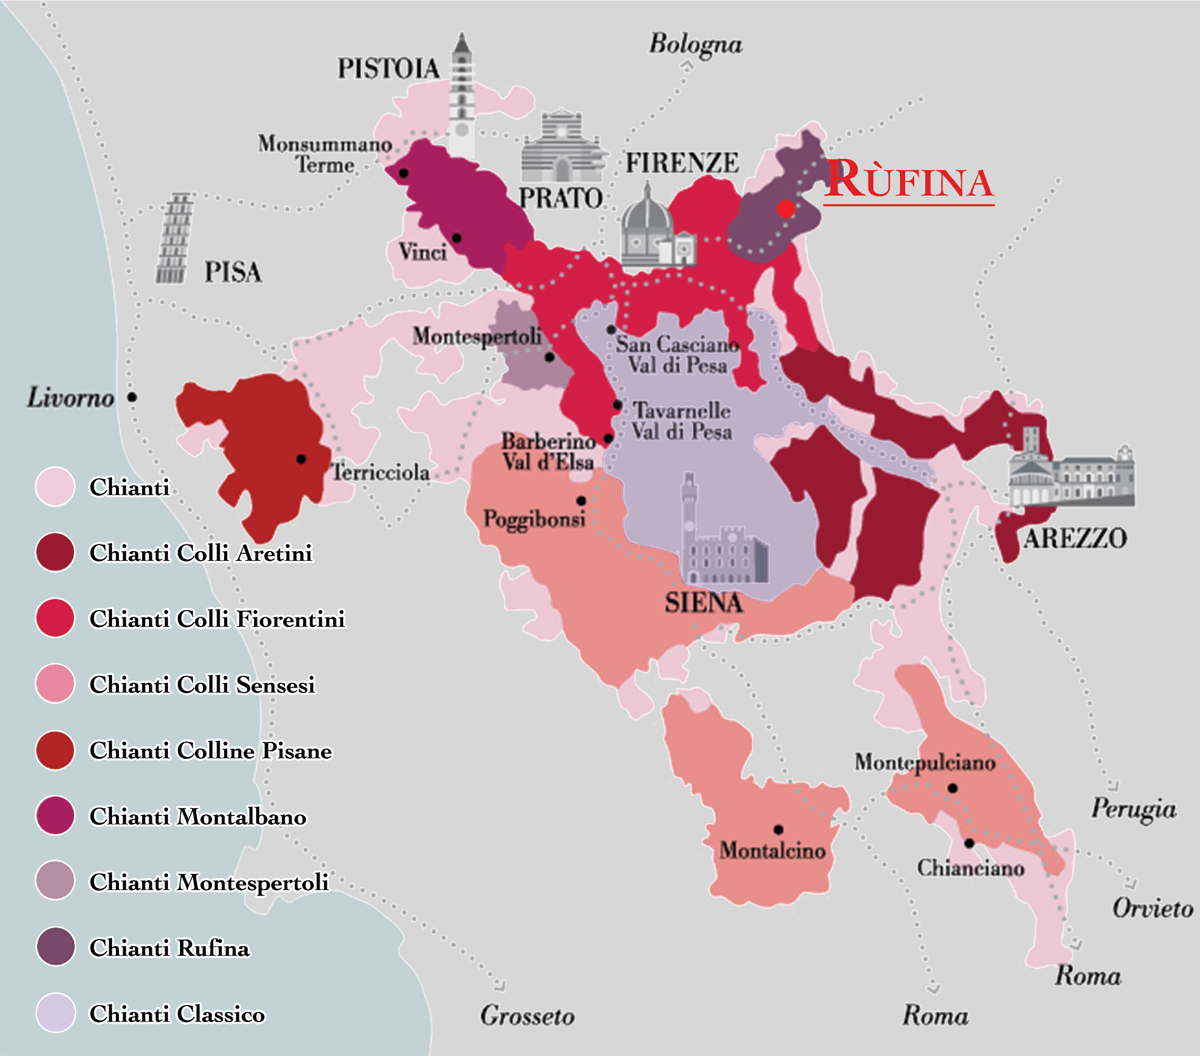 Map of Chianti Zones with Rùfina